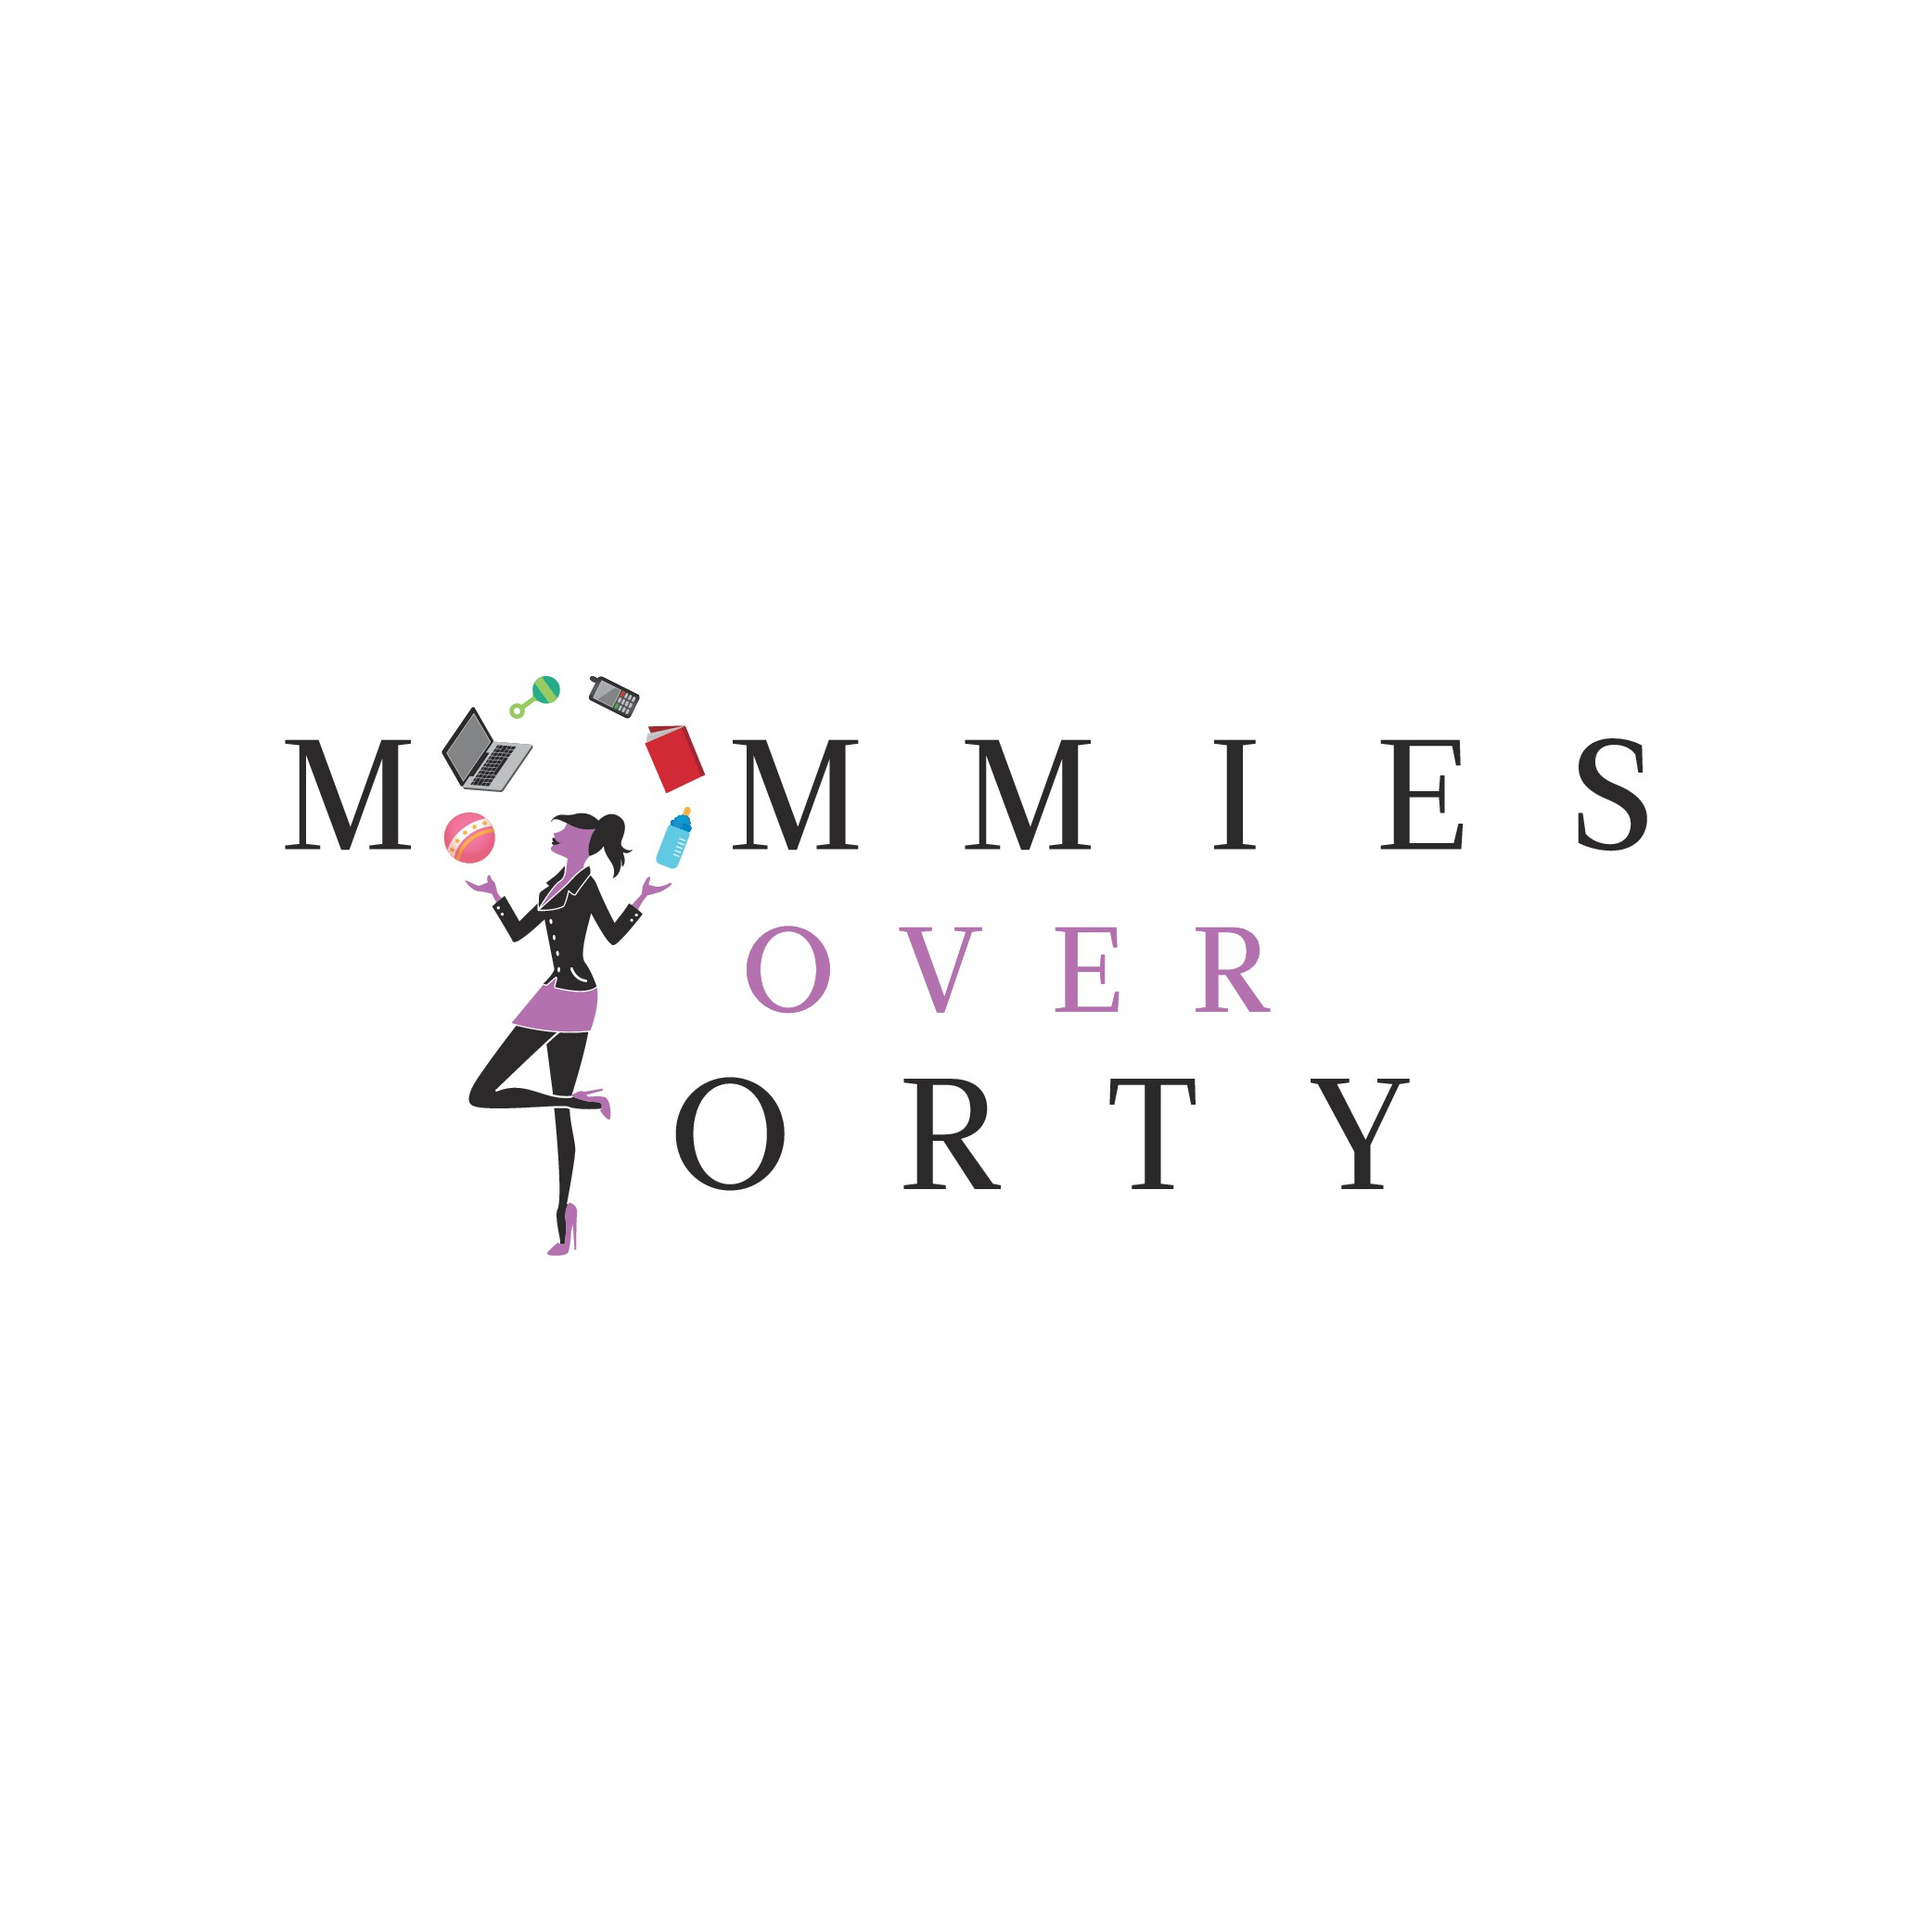 Design sophisticated & fun logo for first time mothers in their forties.